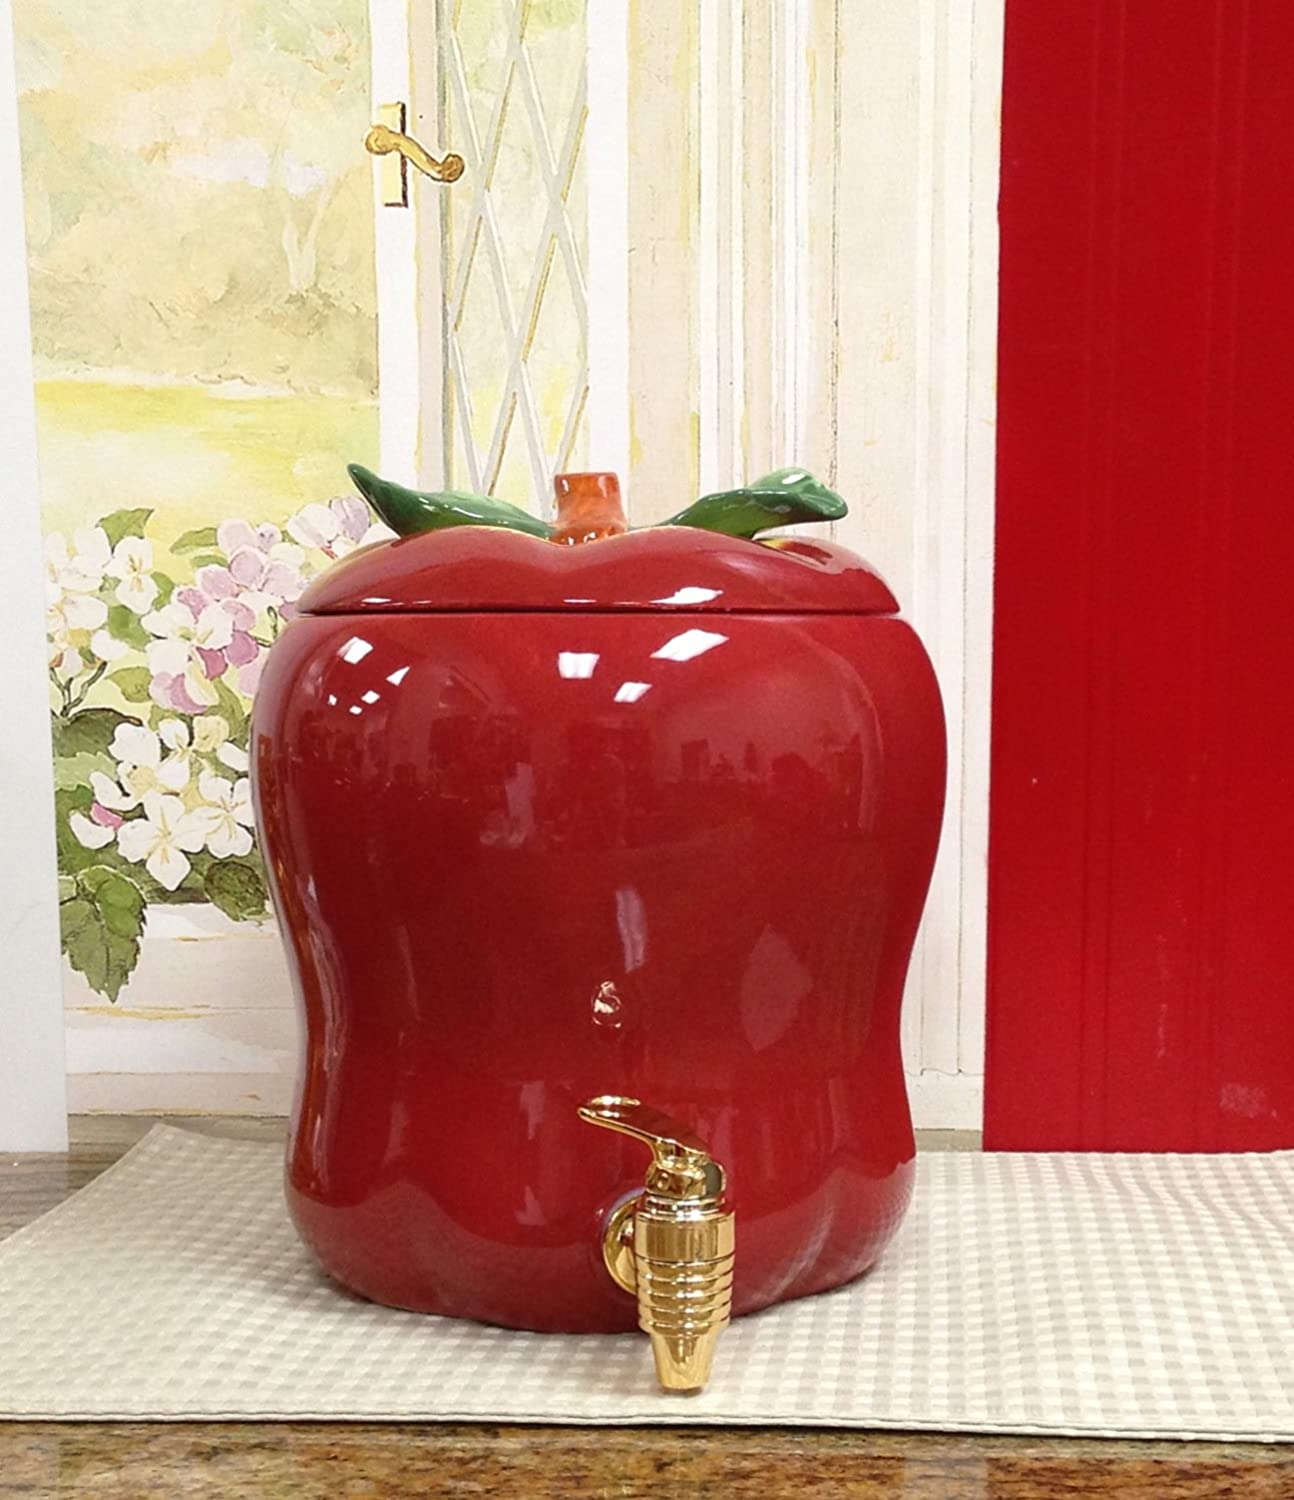 tuscany red apple shaped kitchen decor ceramic water